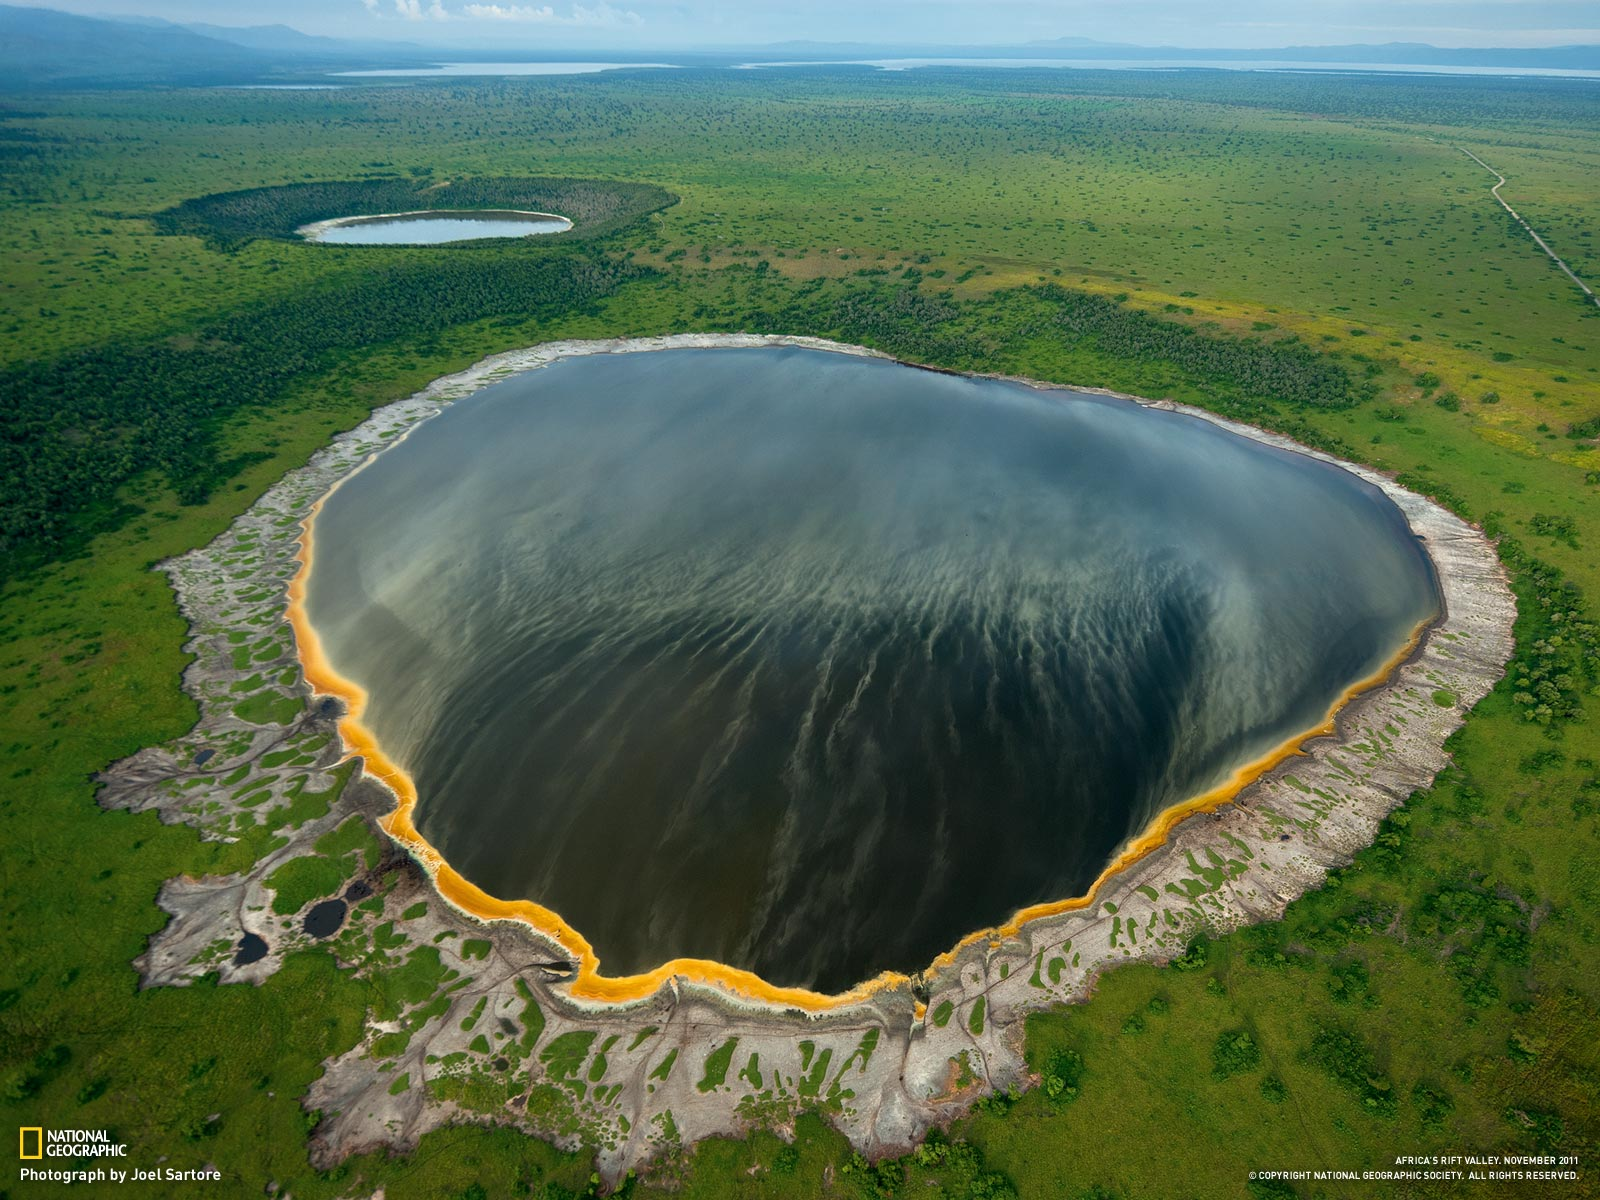 The Albertine Rift In Africa